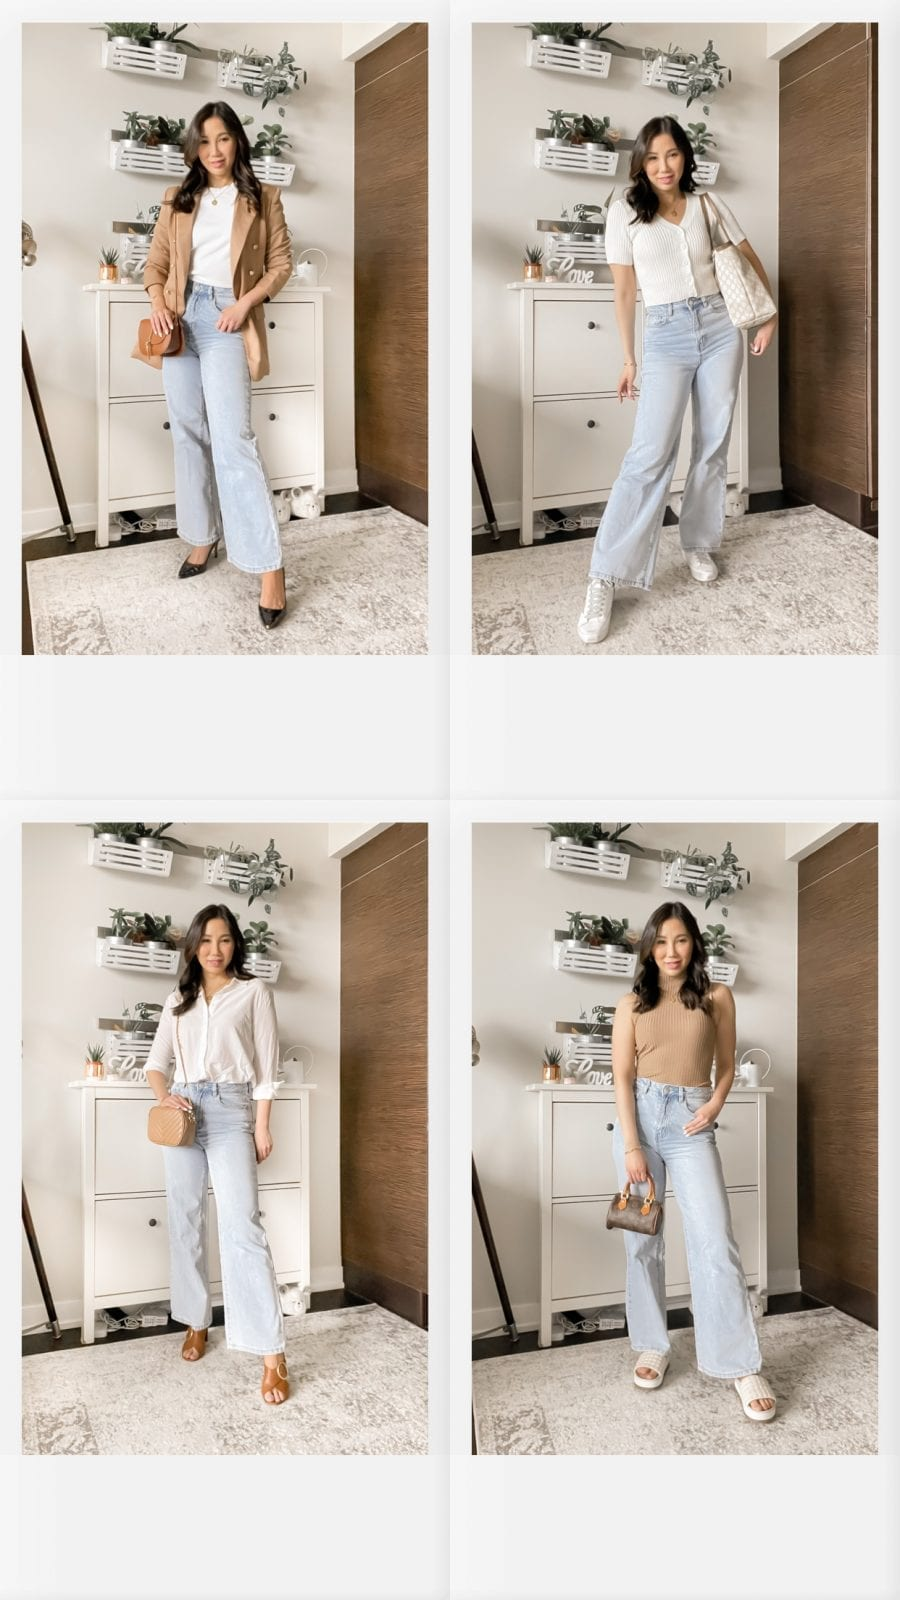 4 ways to style wide leg jeans for summer. From every day casual to workwear inspired. These 4 easy outfit ideas will have you loving the wide leg jeans trend!